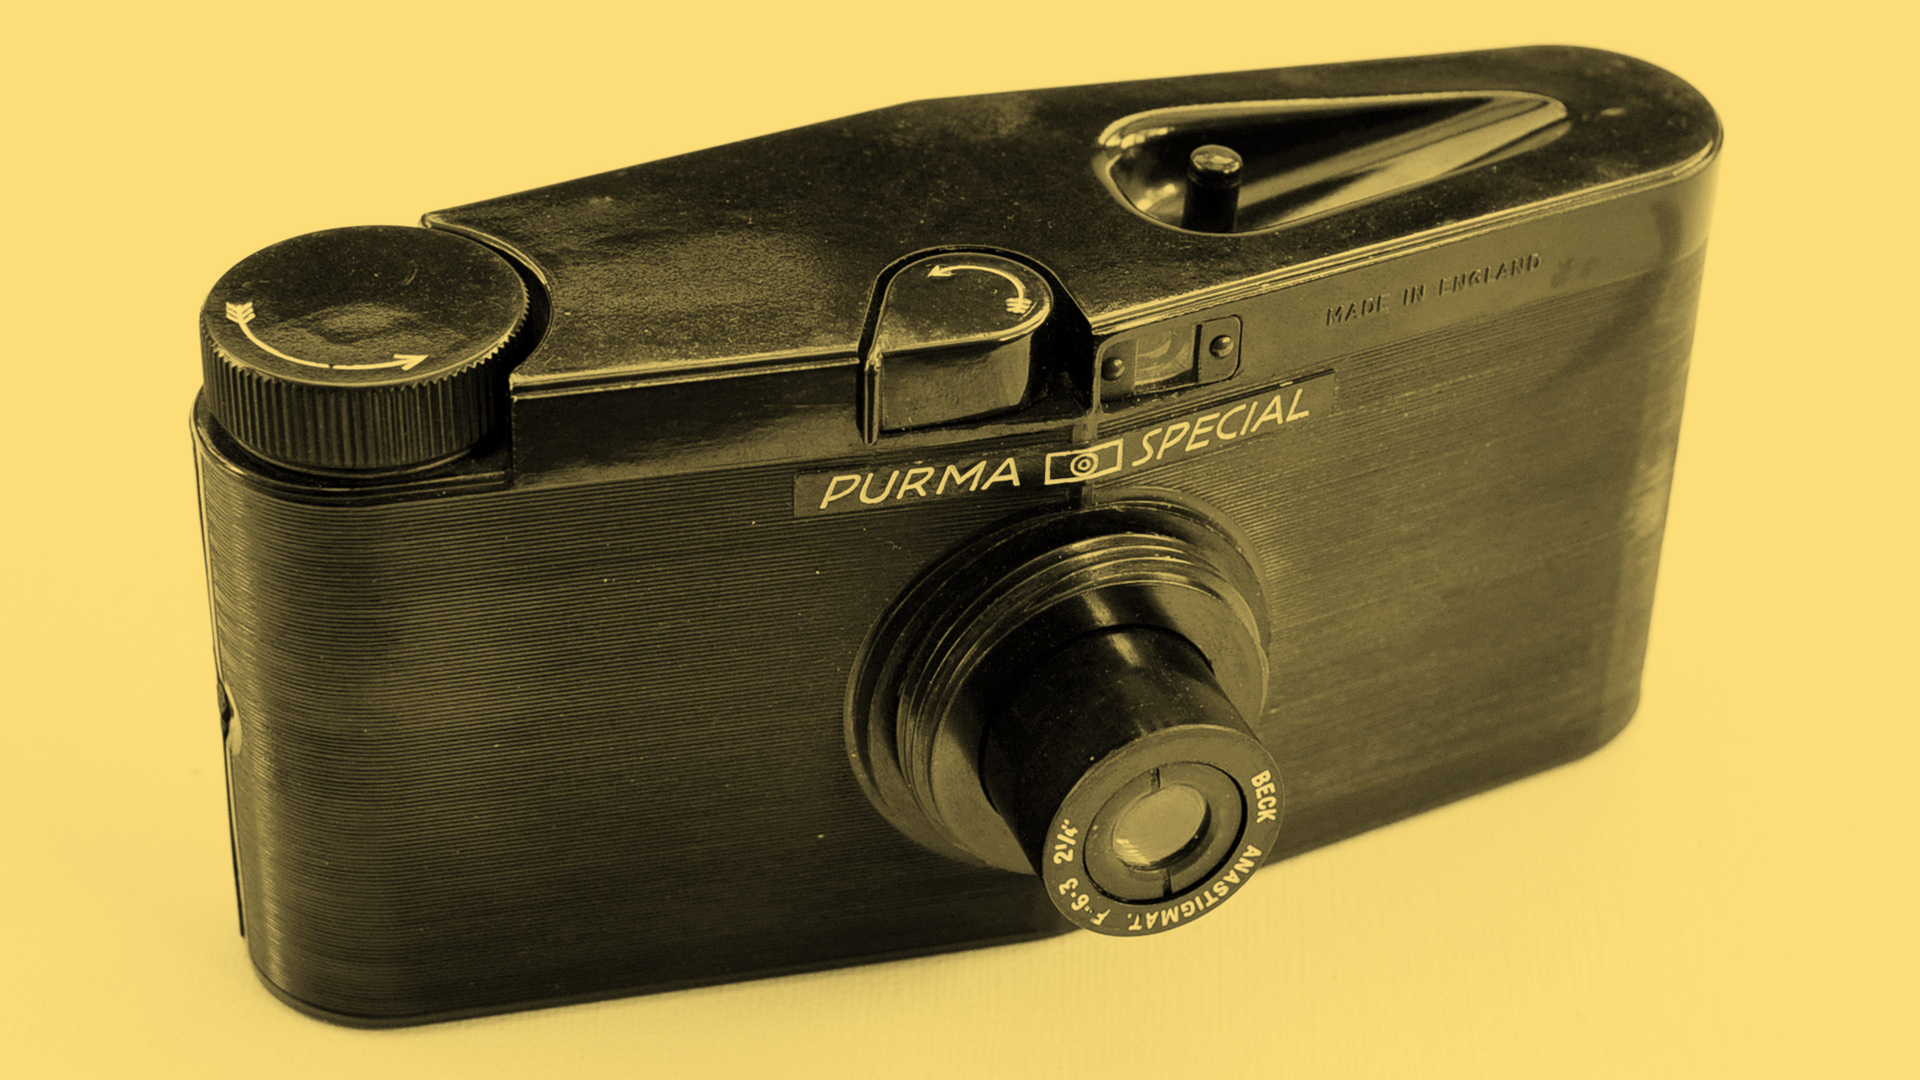 The front of the Purma Special camera on a yellow background